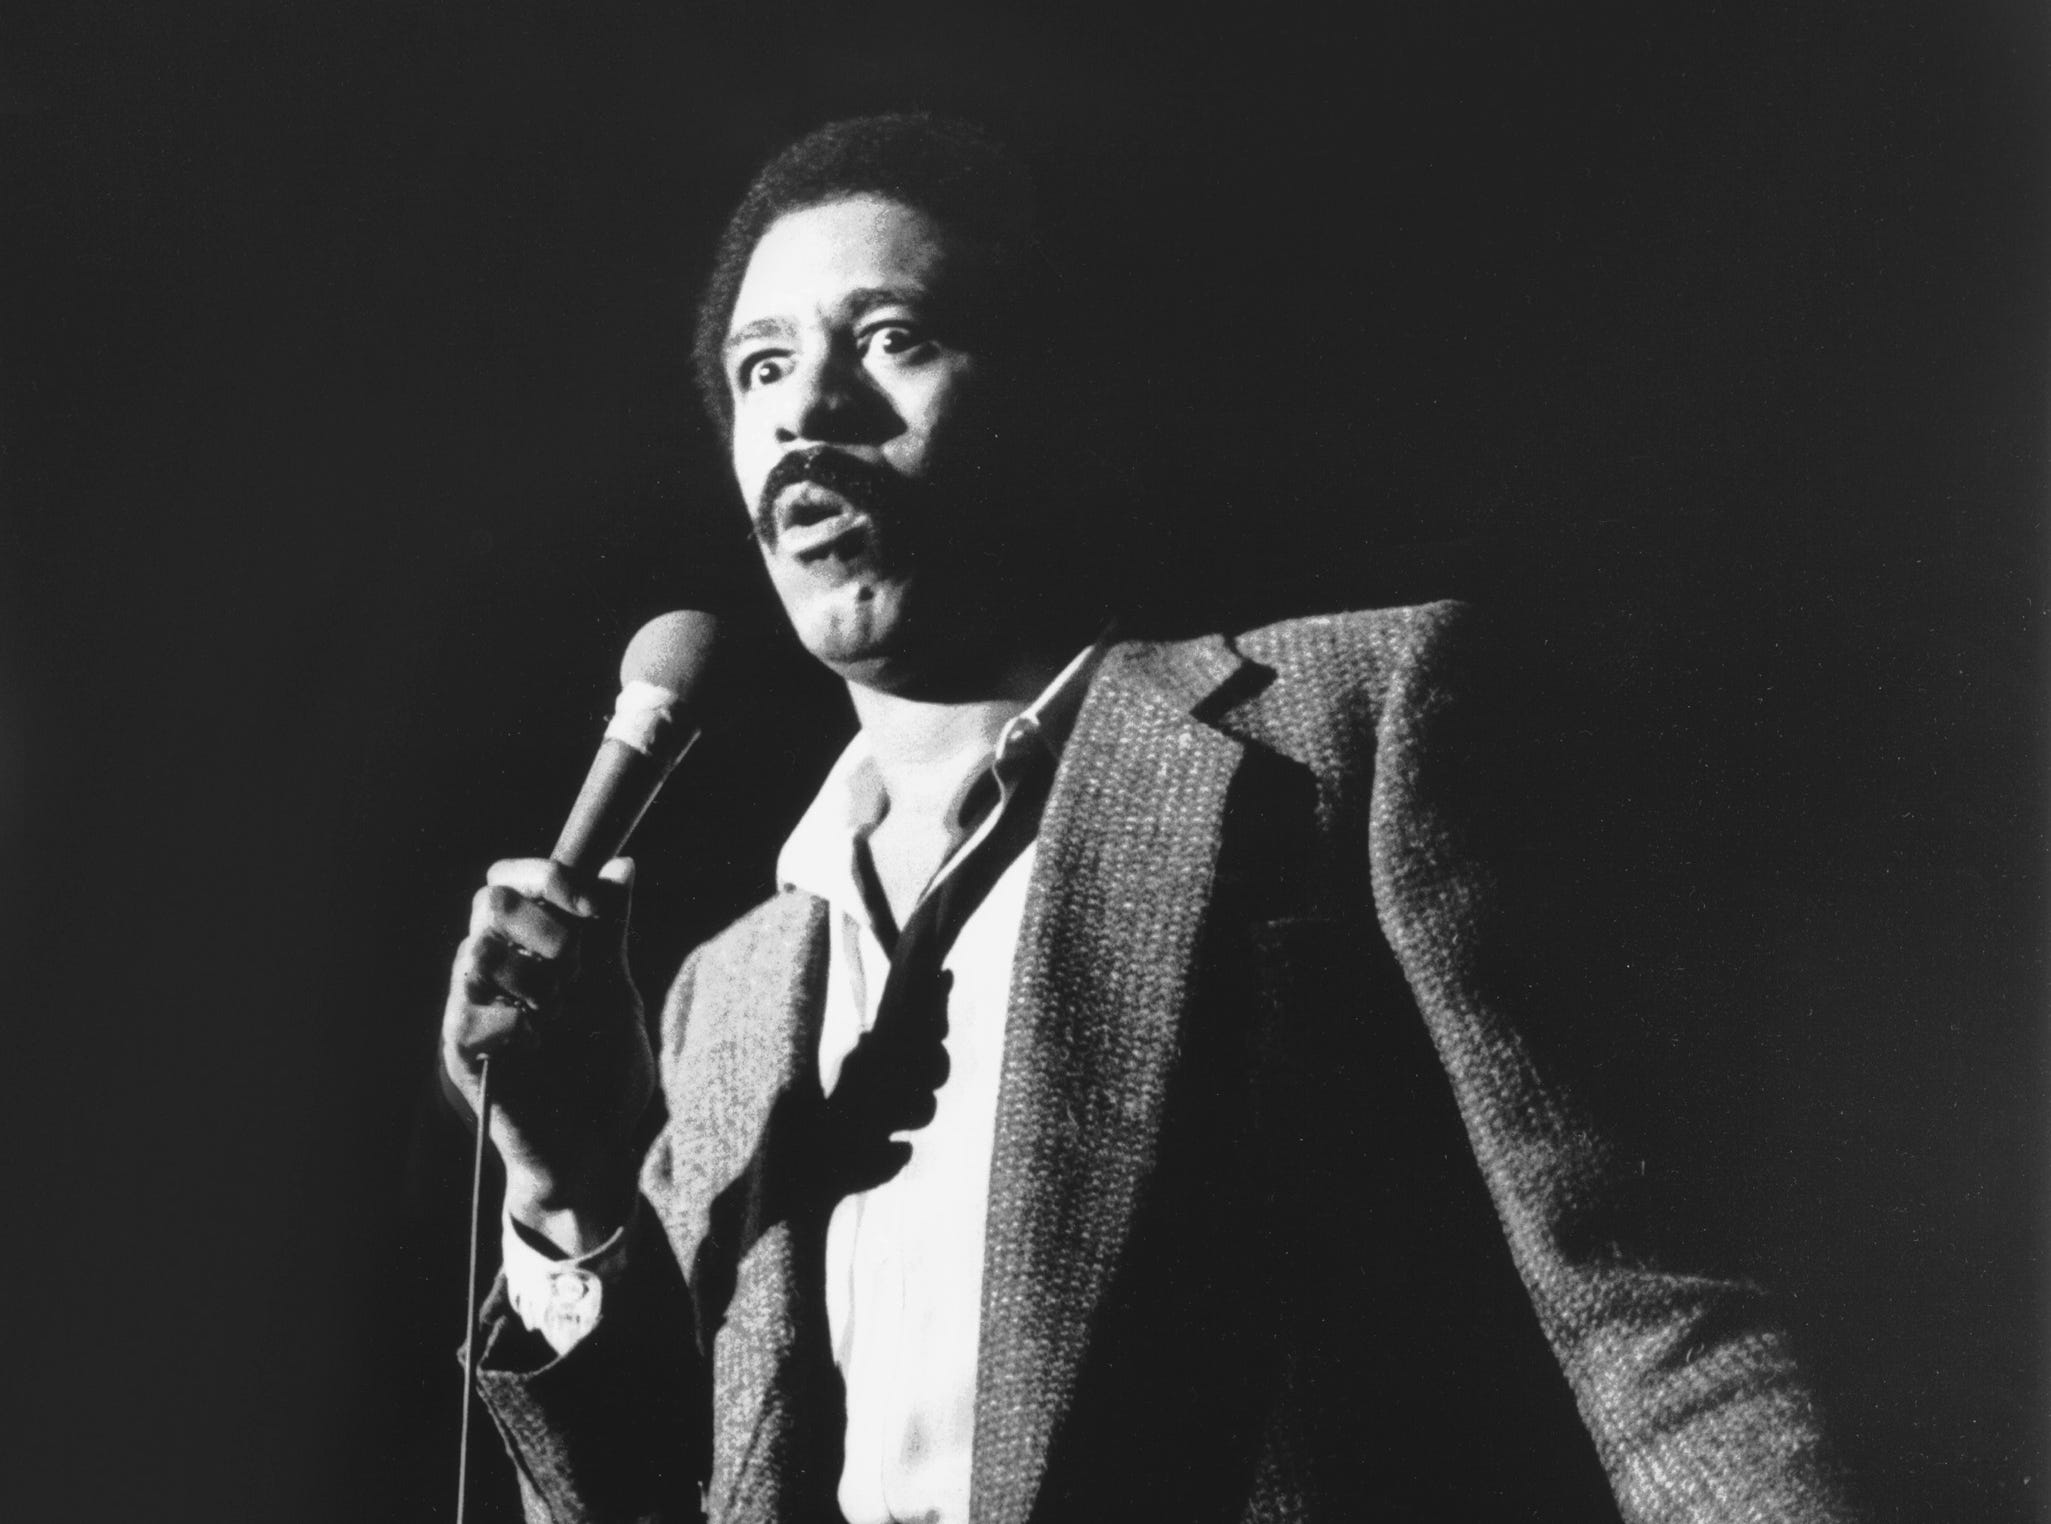 Richard Pryor brought his adult comedy routine to the Mid-South Coliseum on Nov. .22, 1978.